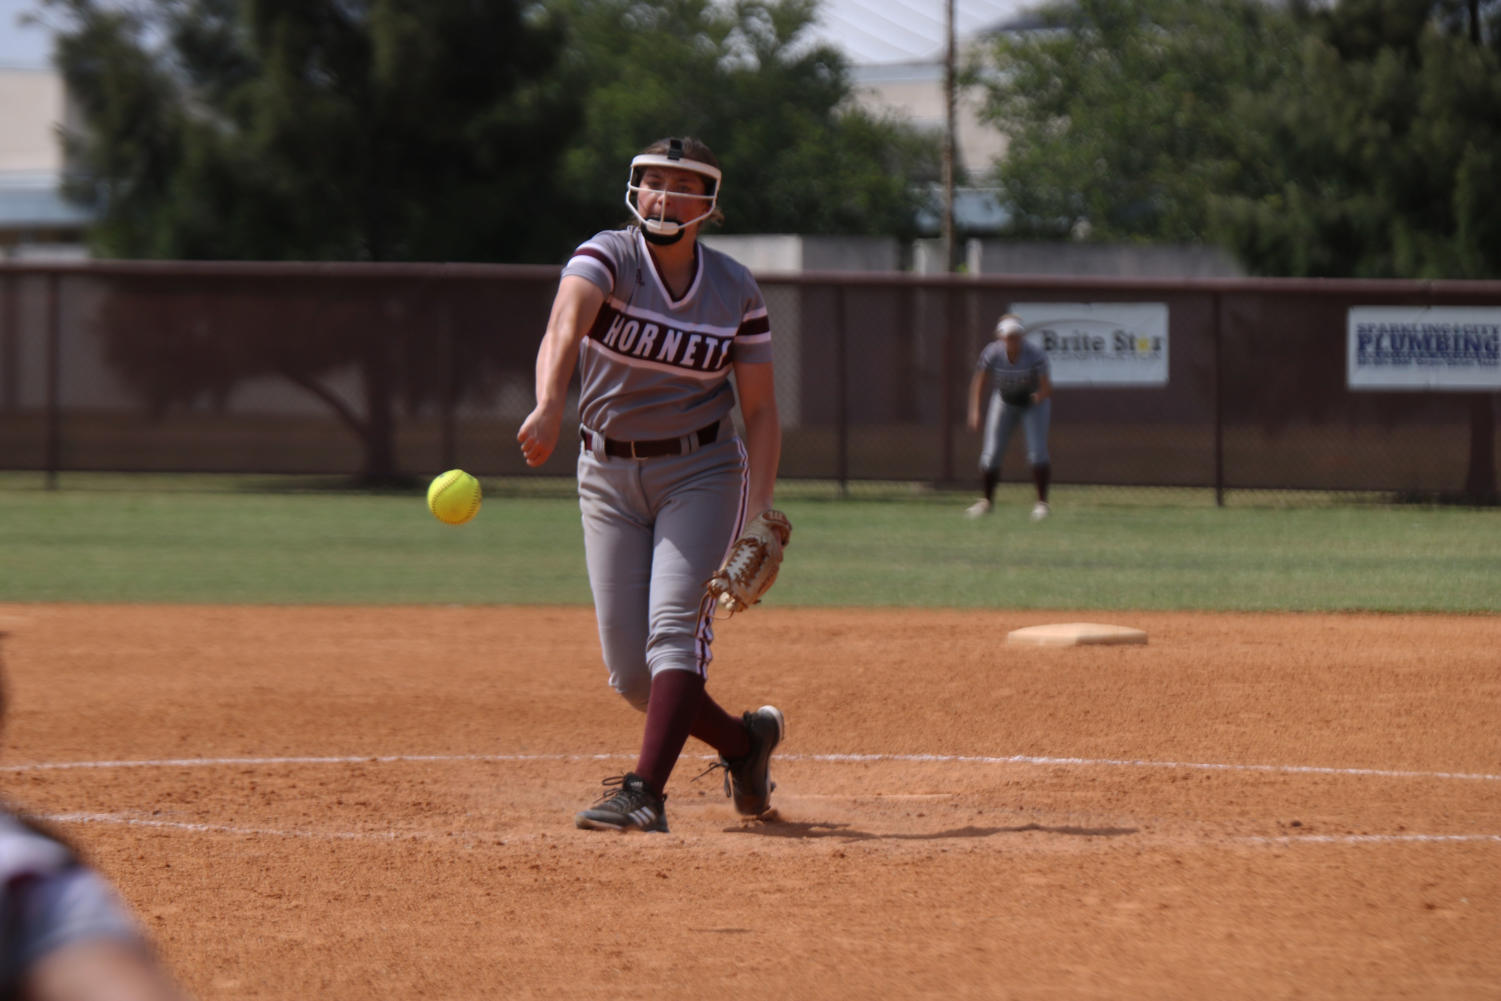 Junior Kayci Spittler pitches  in the region quarterfinals playoff game vs Calallen on May 12.  The lady Hornets fell 5-3.